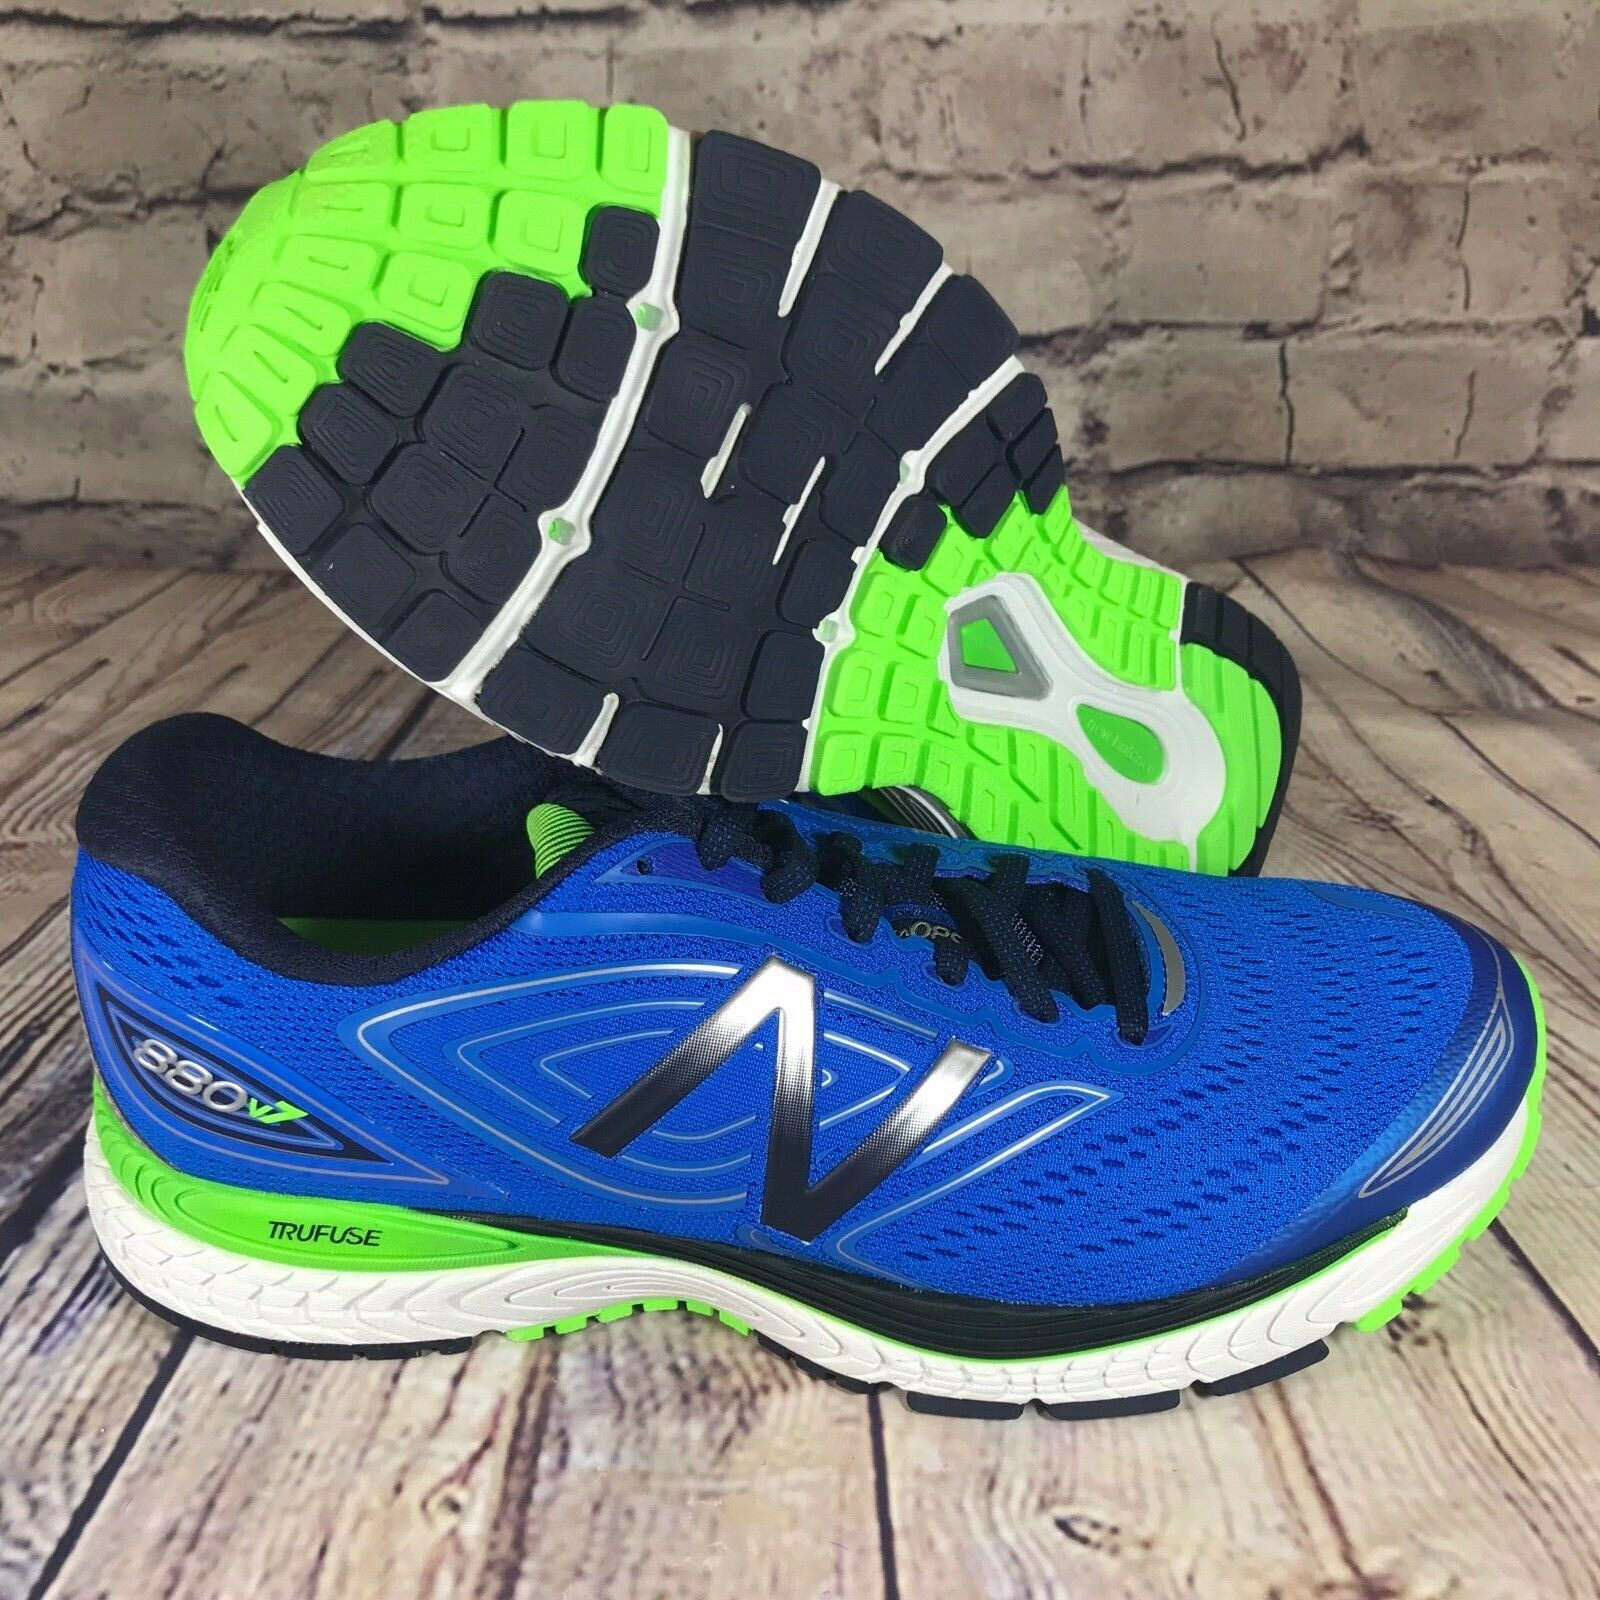 New Balance Men's 880v7 shoes bluee Running shoes WIDE 2E M880BW7